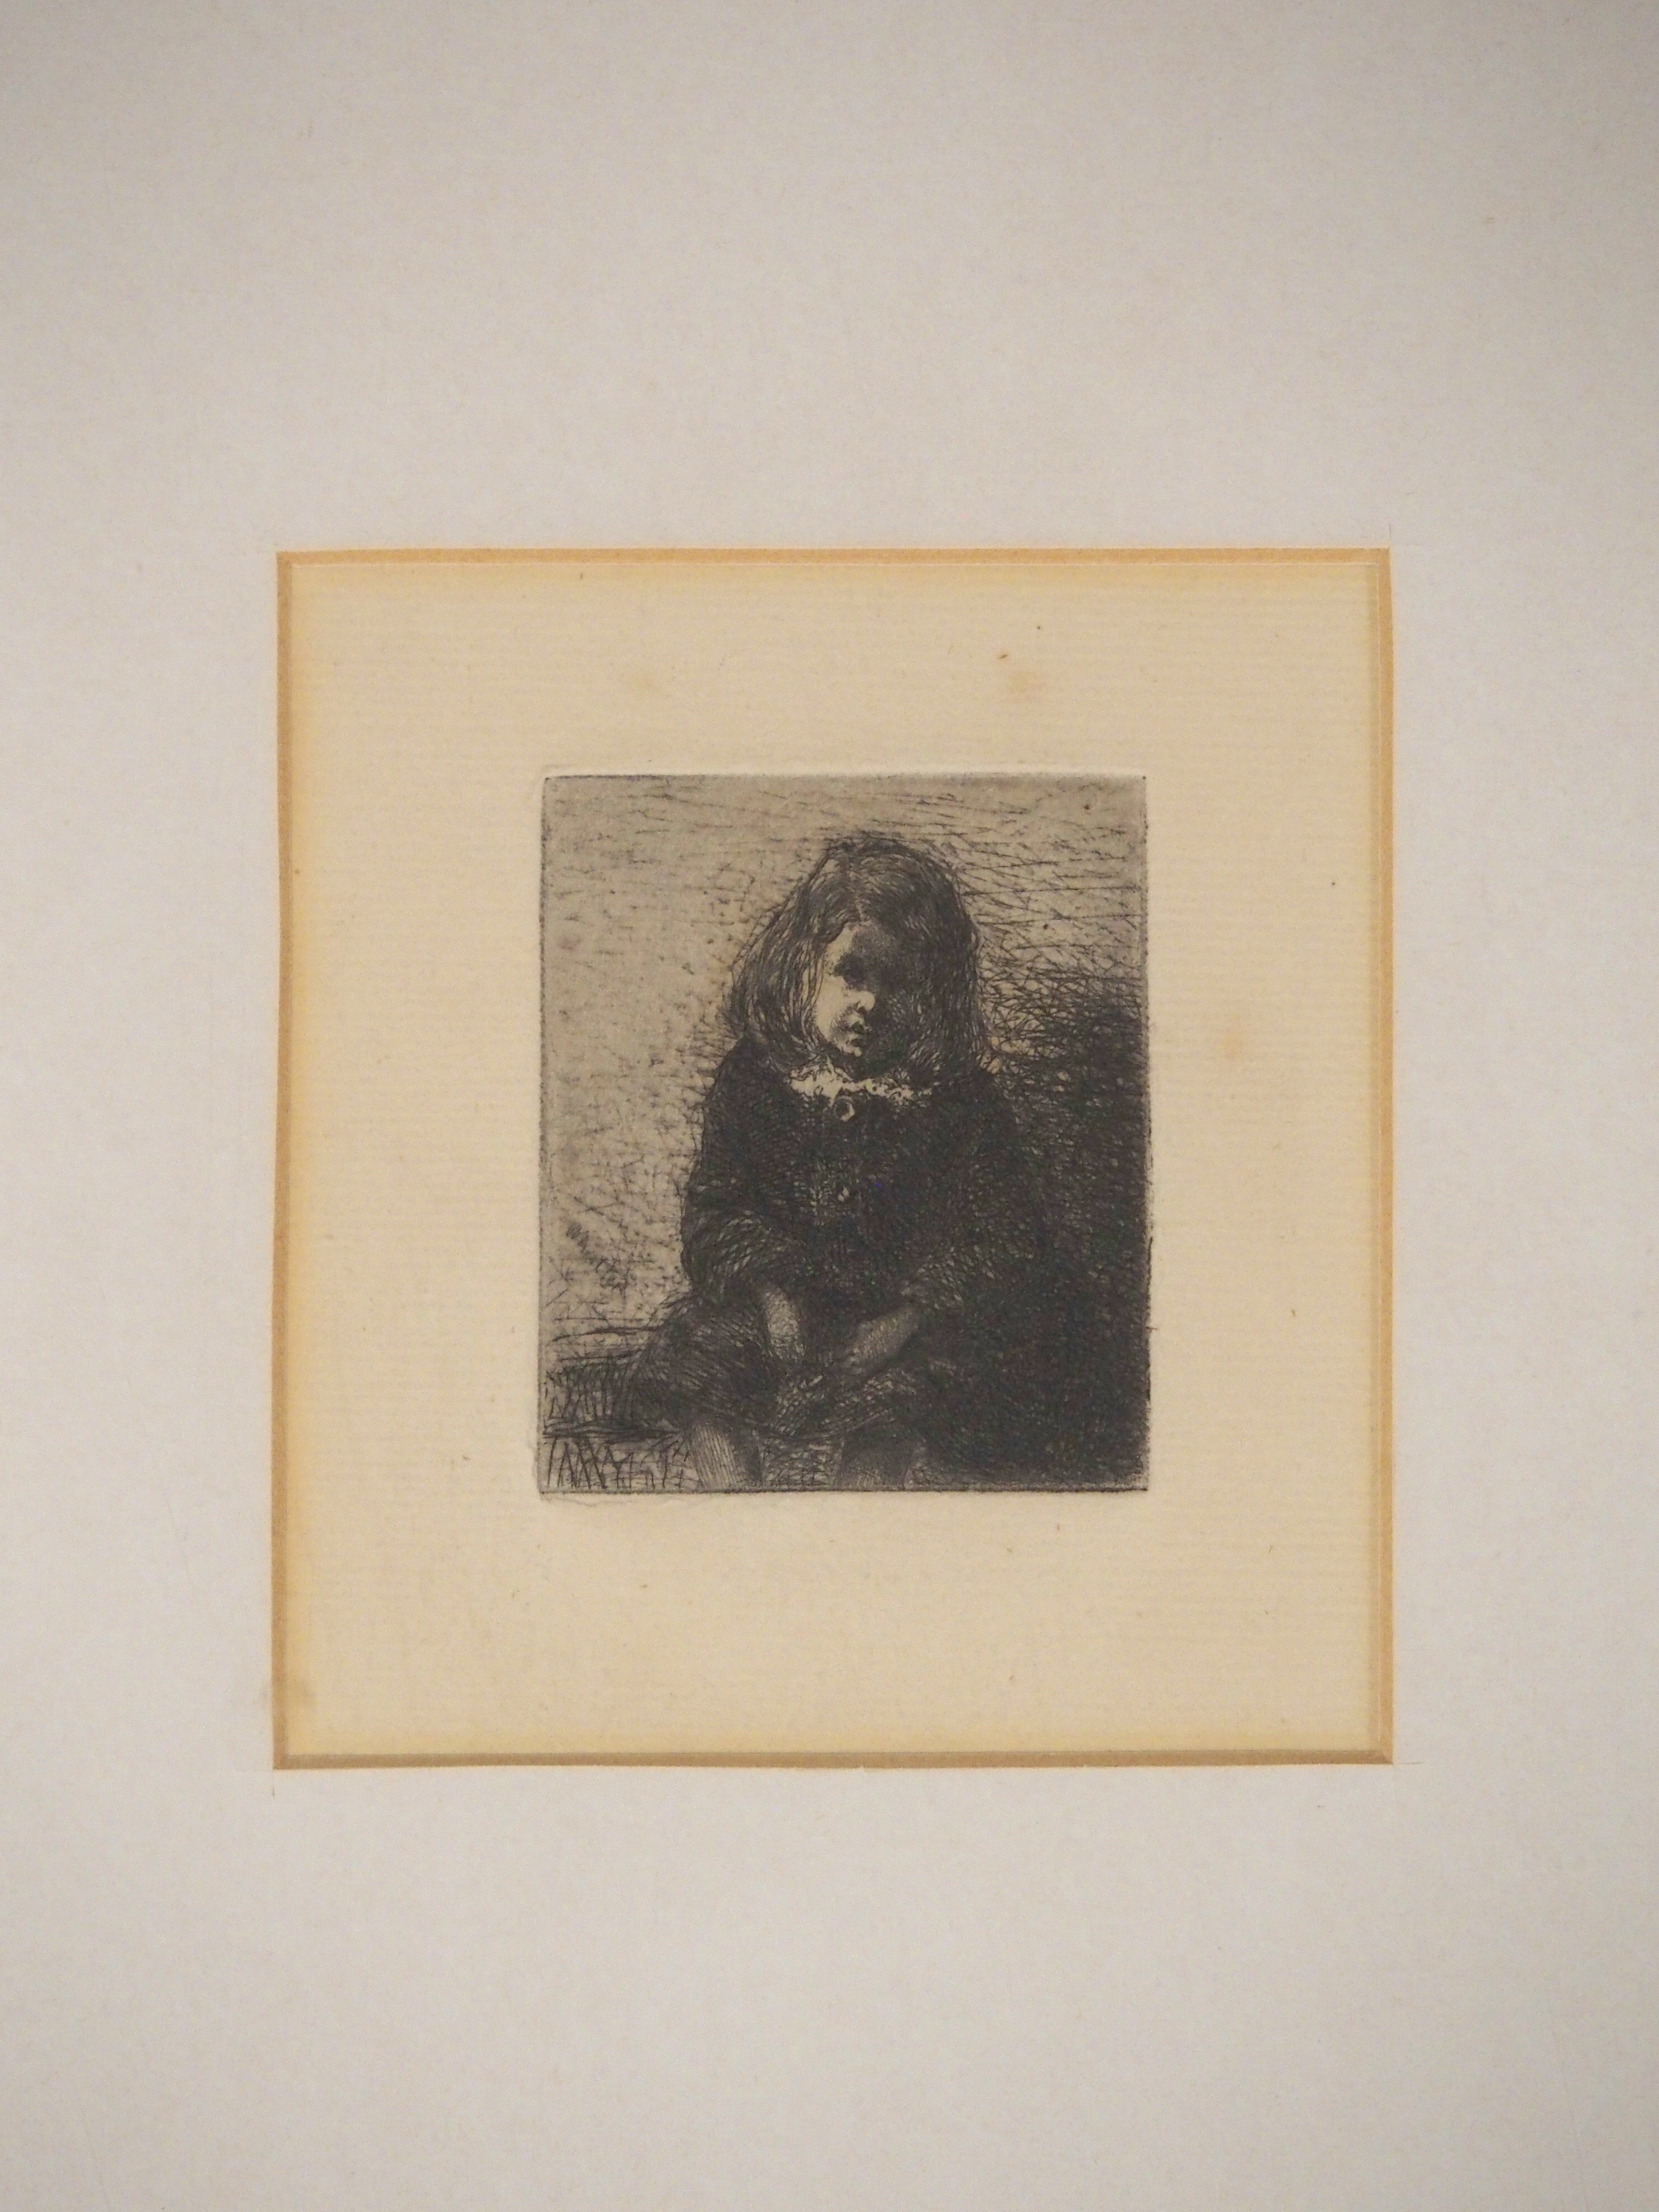 JAMES ABBOTT MCNEILL WHISTLER RBA (AMERICAN 1834-1903) GIRL SEATED etching, 6 x 5cm Condition - Image 2 of 3